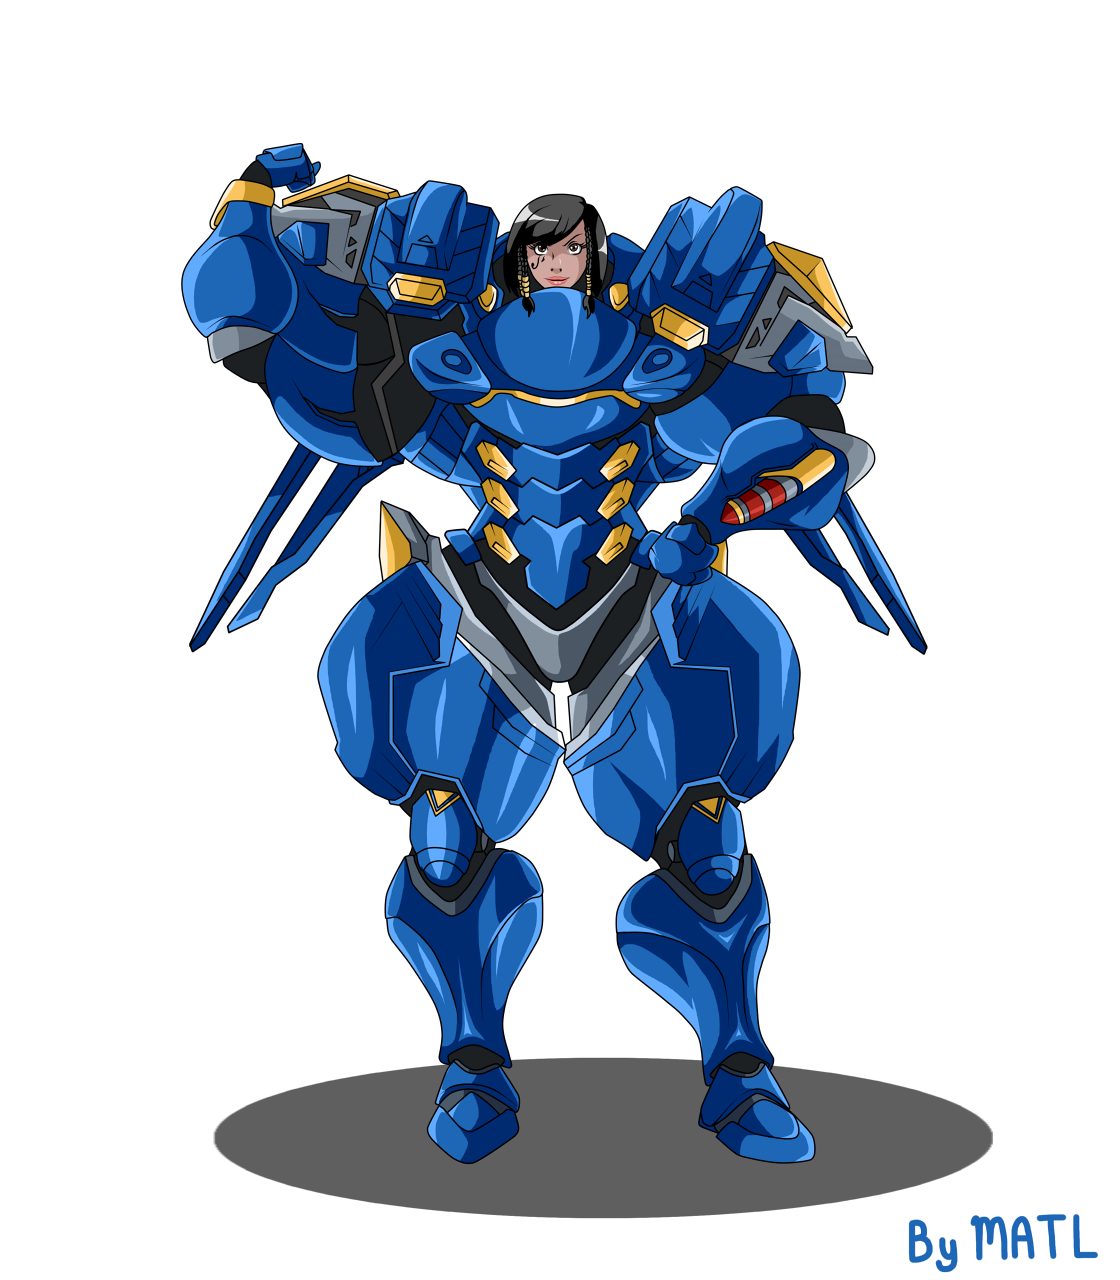 Commission by matl fur. Pharah overwatch png